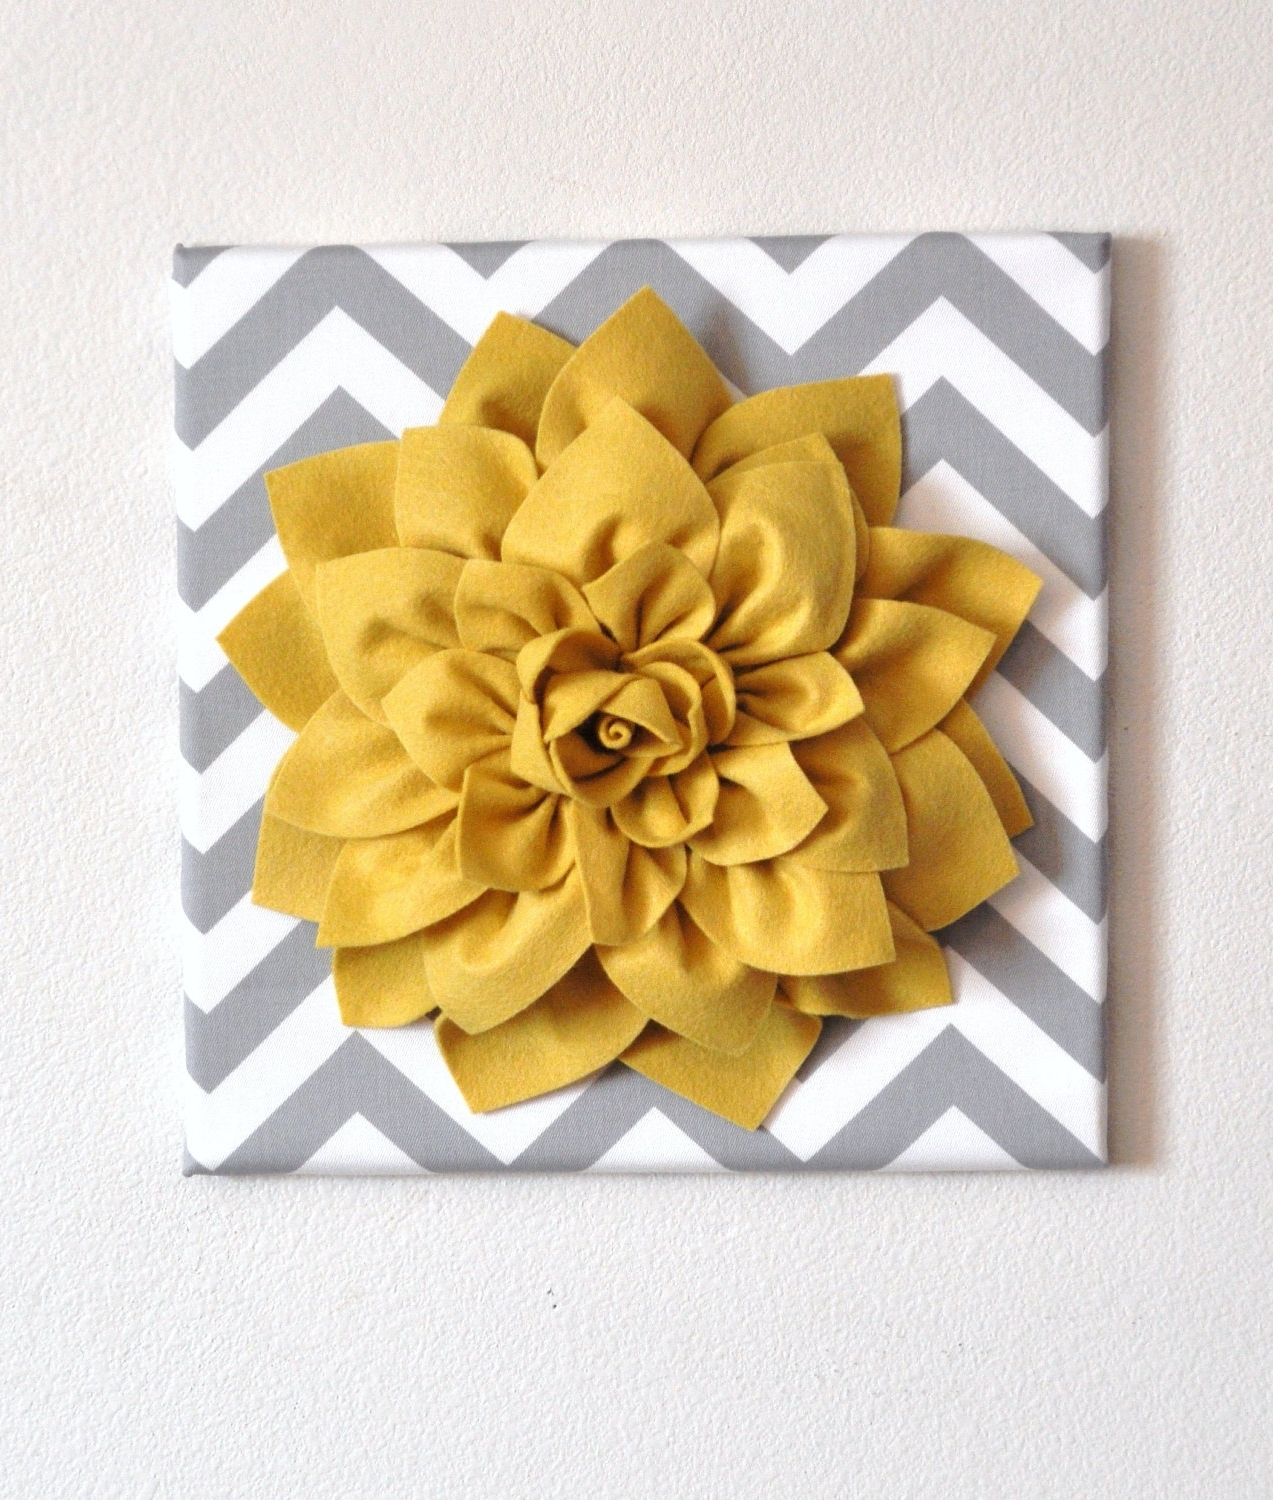 Preferred Wall Flower  Mellow Yellow Dahlia On Gray And White Chevron 12 X12 Throughout 3D Flower Wall Art (View 14 of 15)